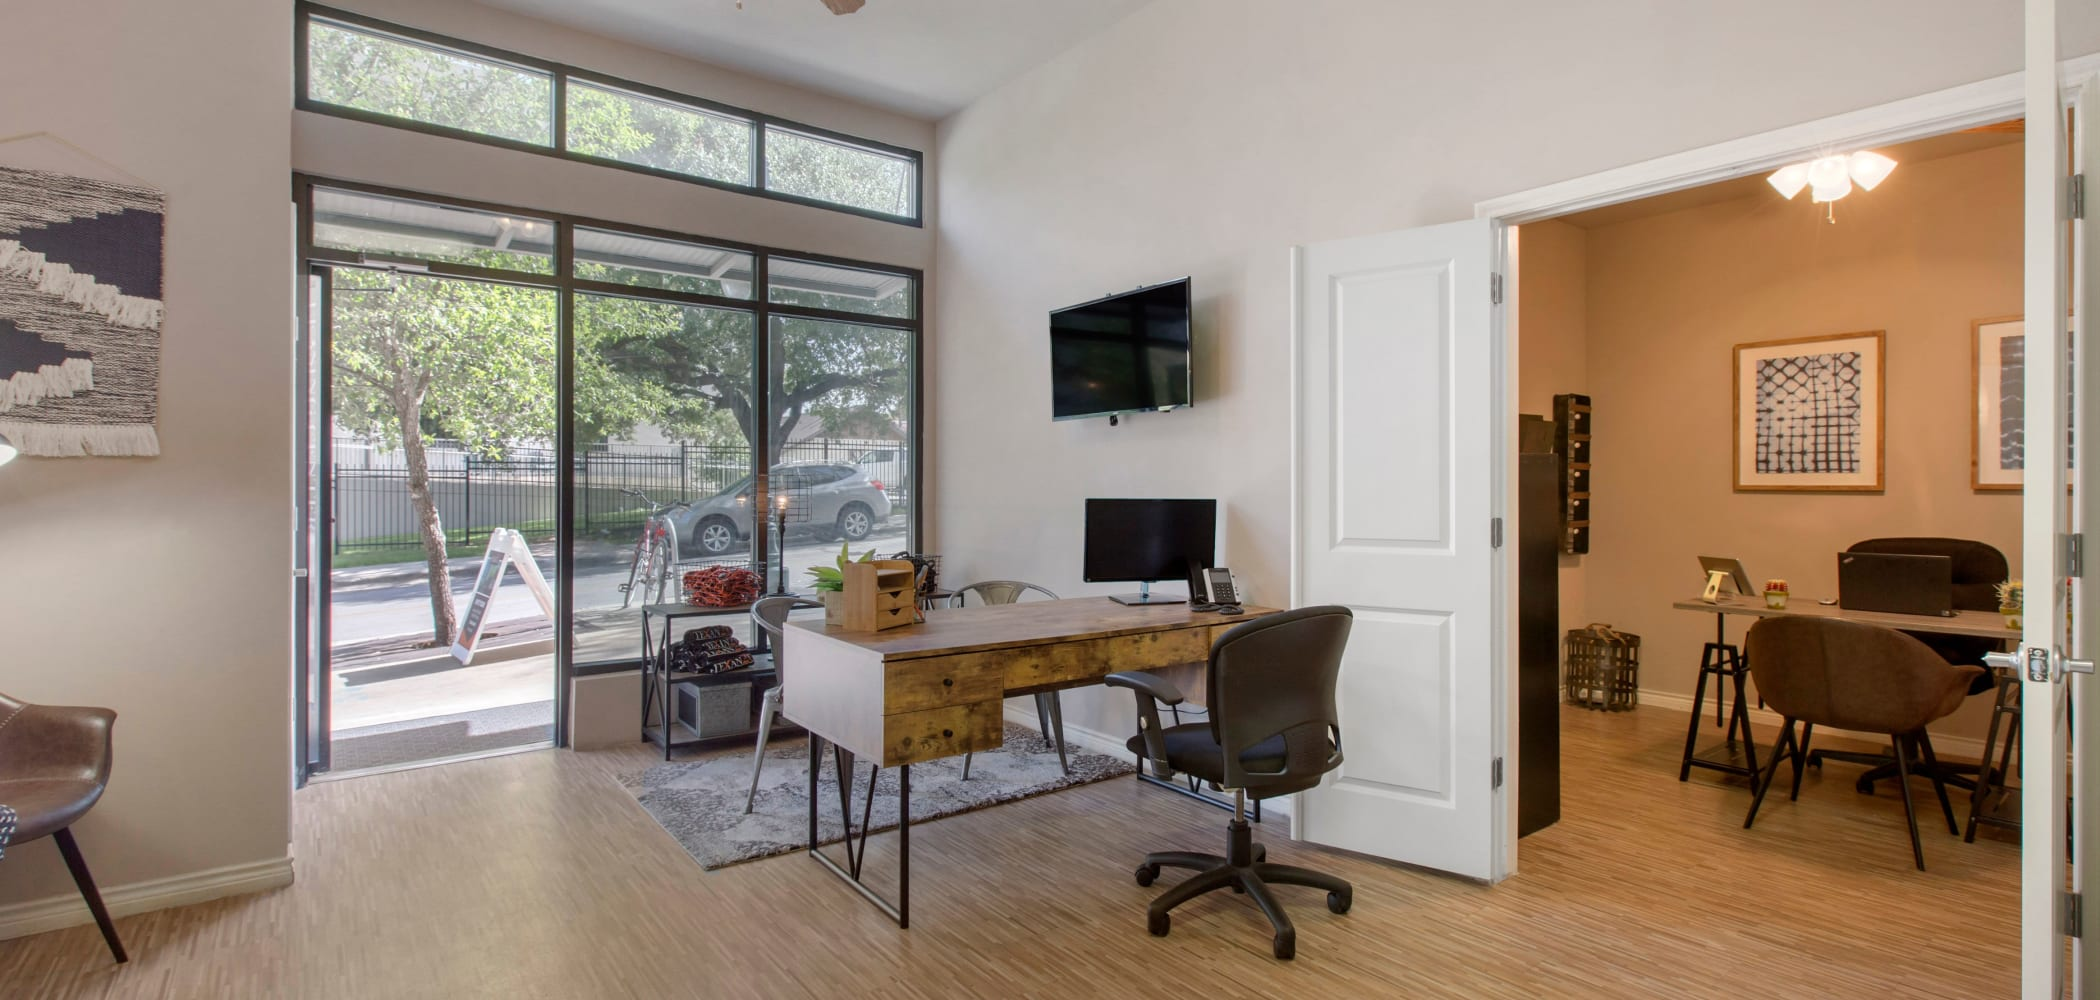 Leasing office at Texan 26 in Austin, Texas